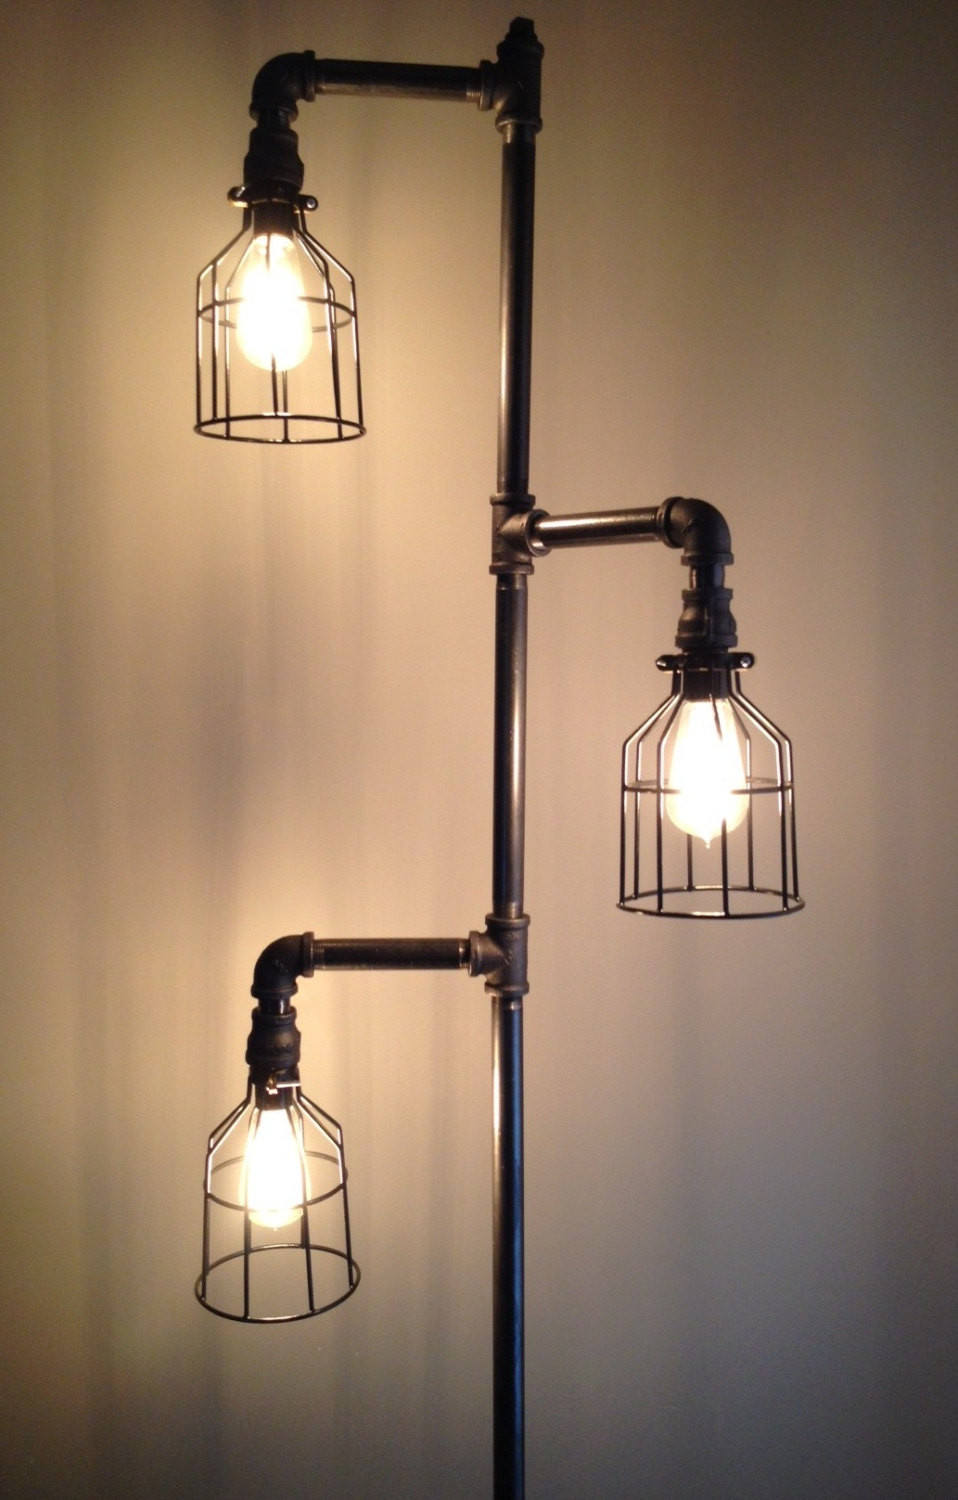 Best ideas about DIY Industrial Floor Lamp . Save or Pin Inexpensive DIY Floor Lamp Ideas to Make at Home Now.